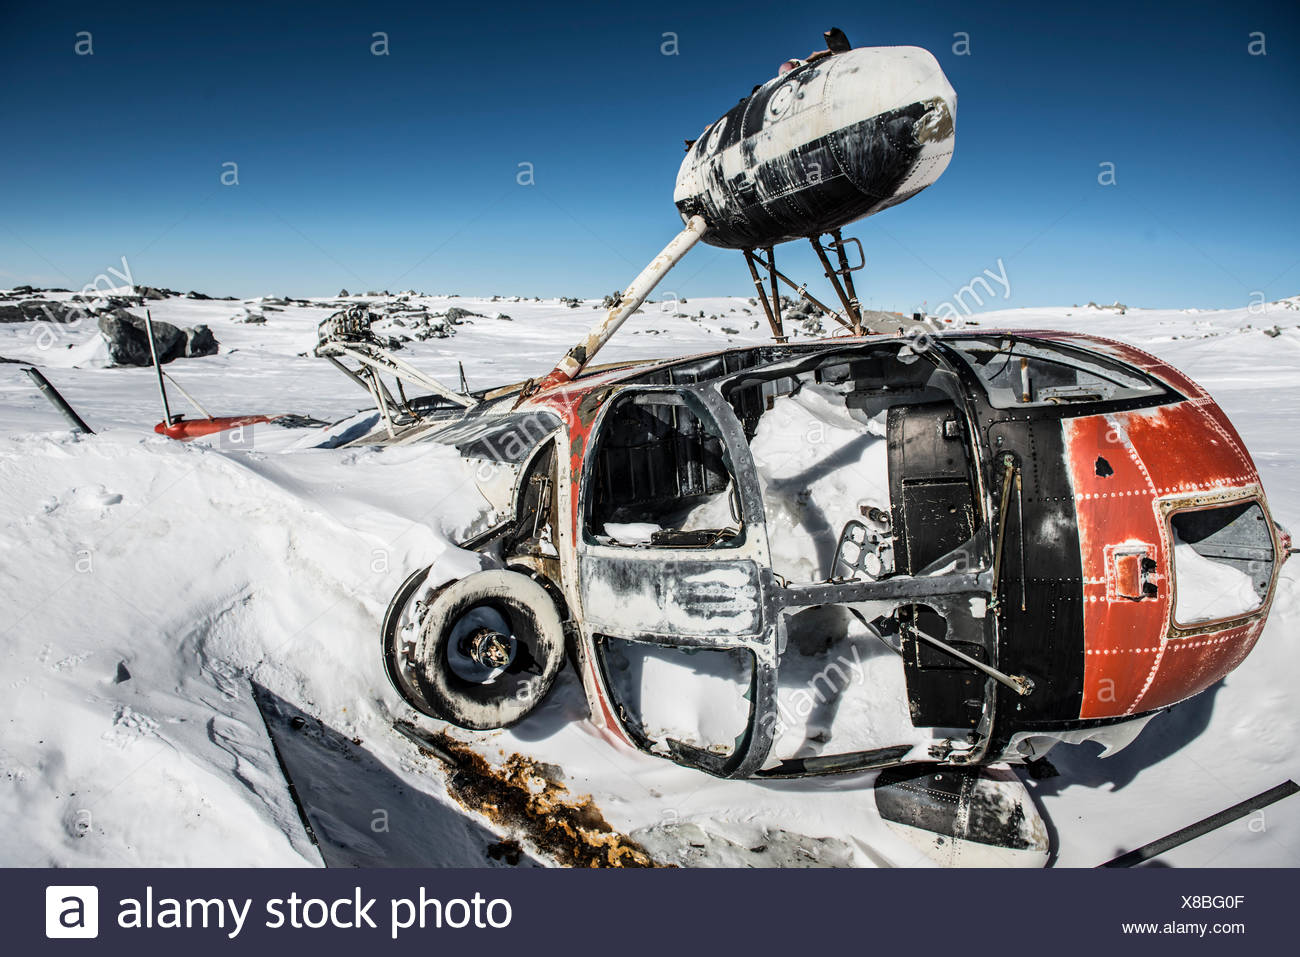 Crashed Helicopter near the summit of Mount erebus, Antarctica. - Stock Image